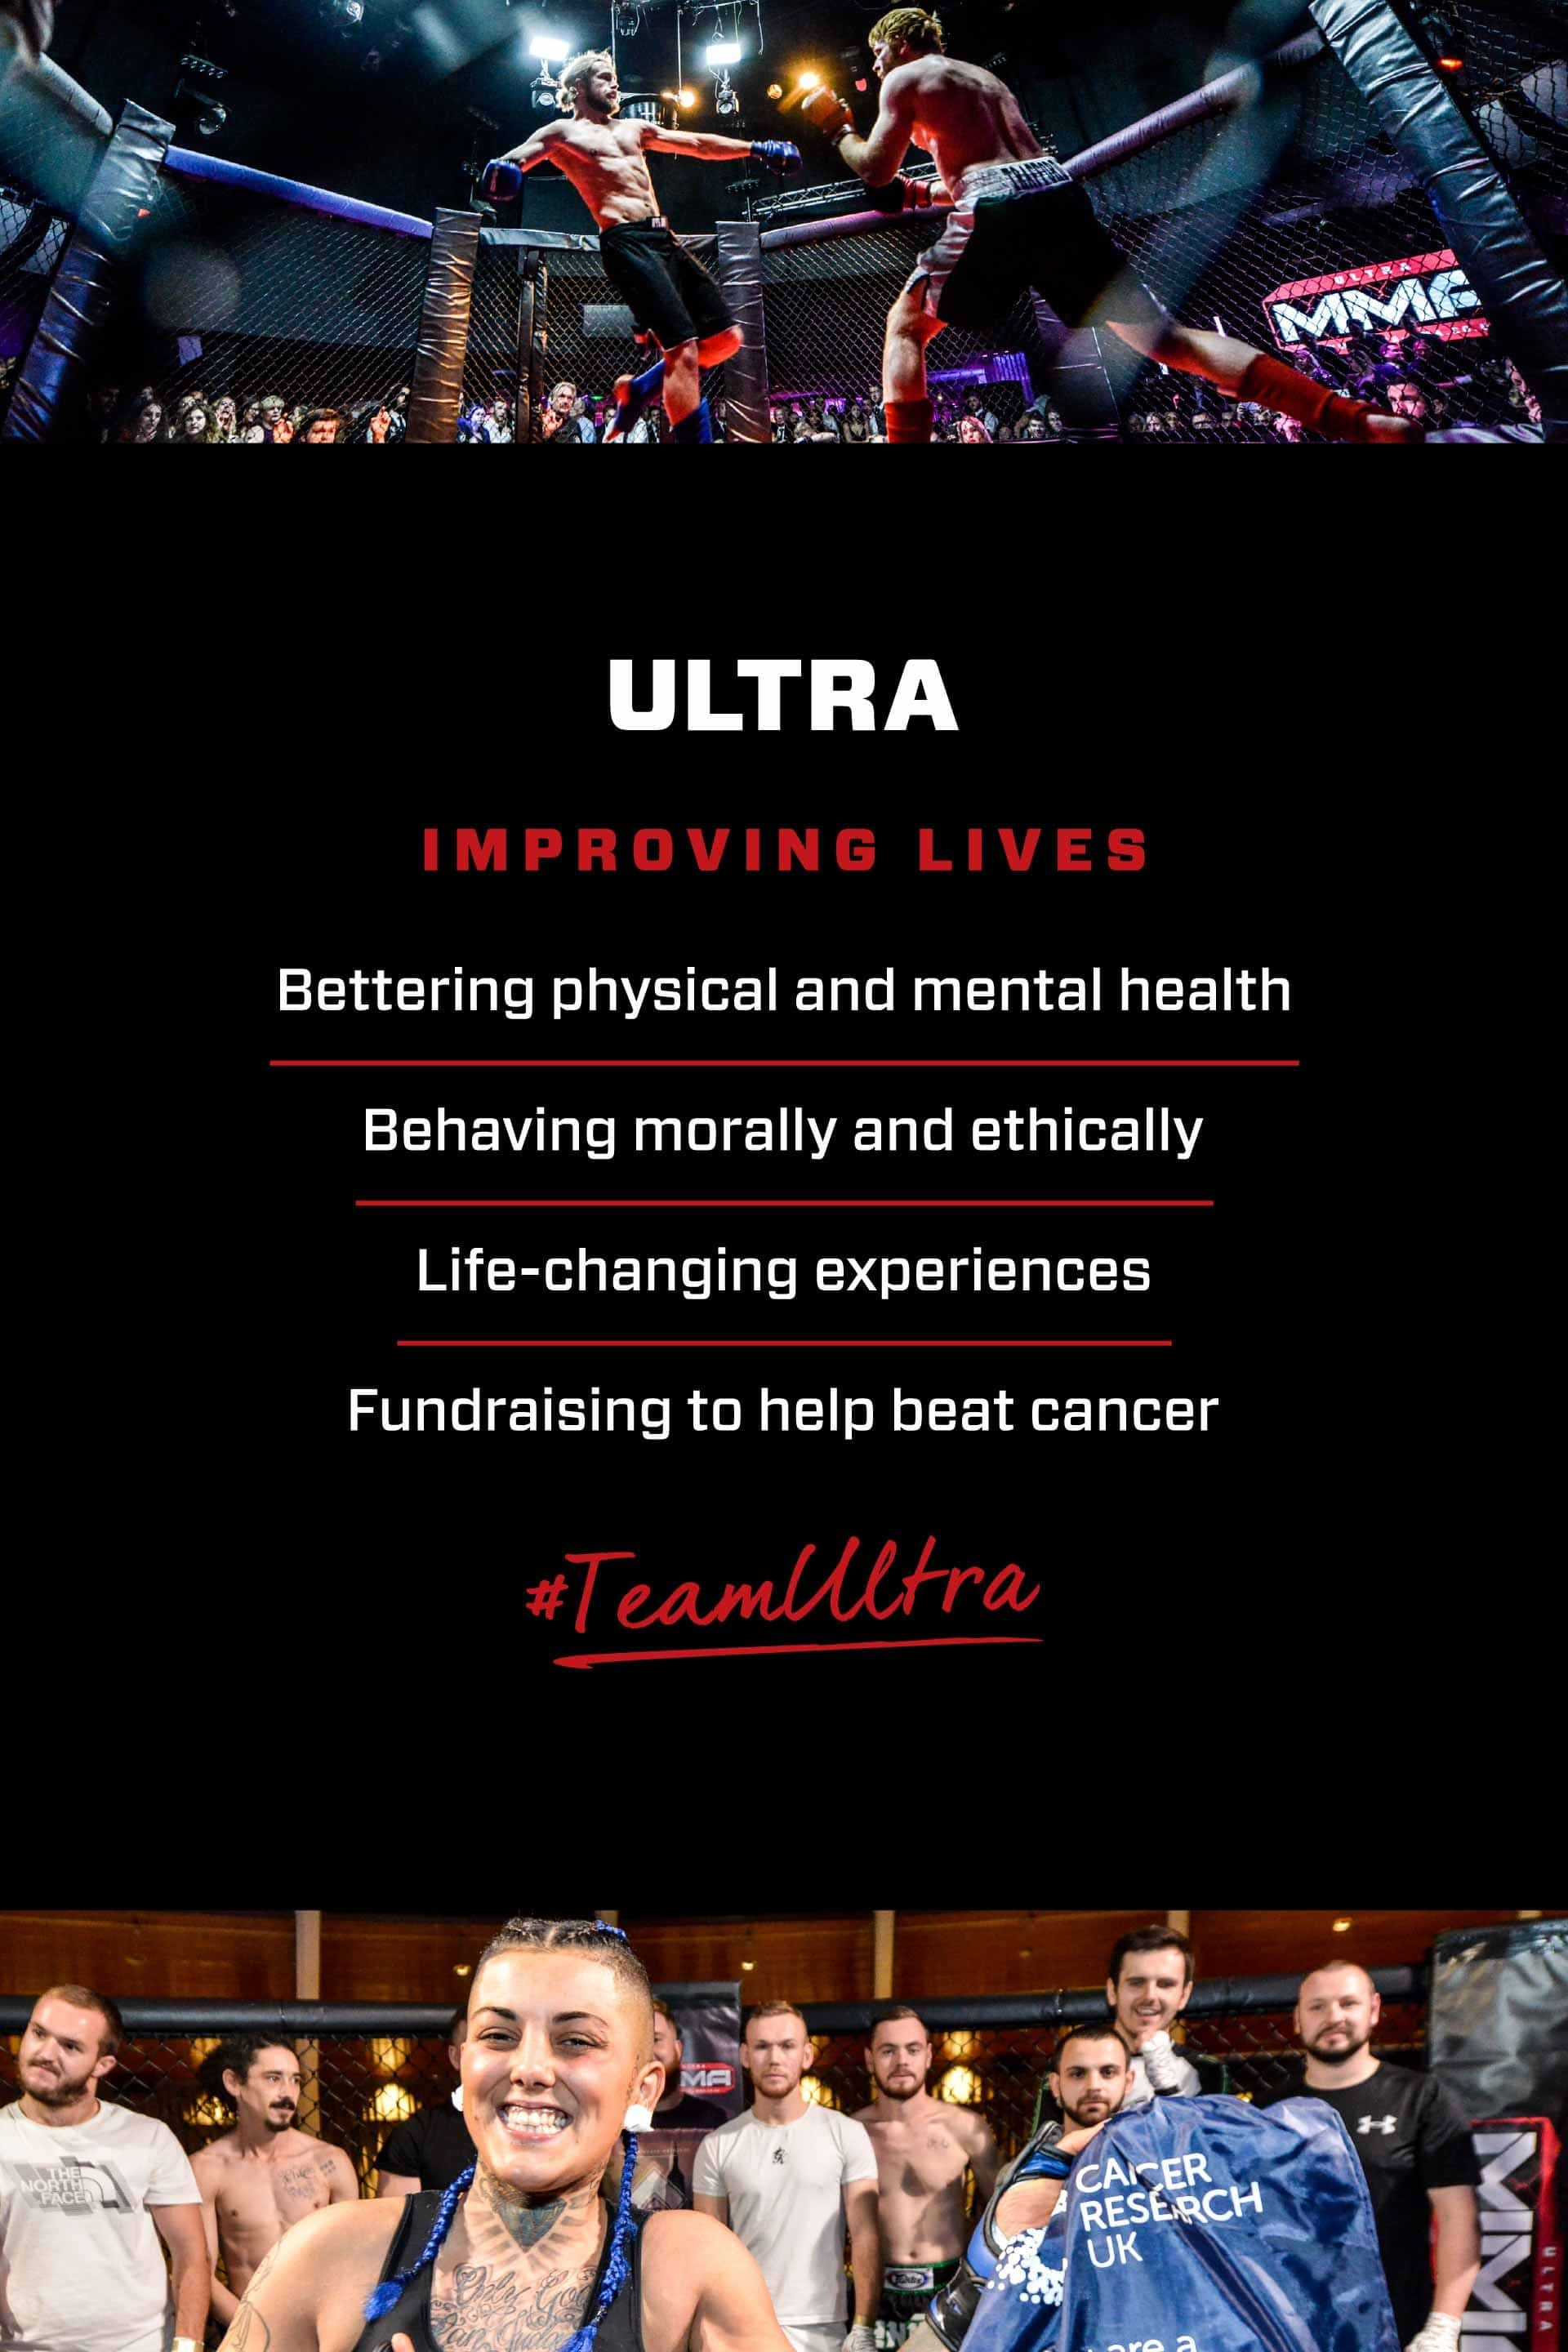 Ultra Events Mission Statements